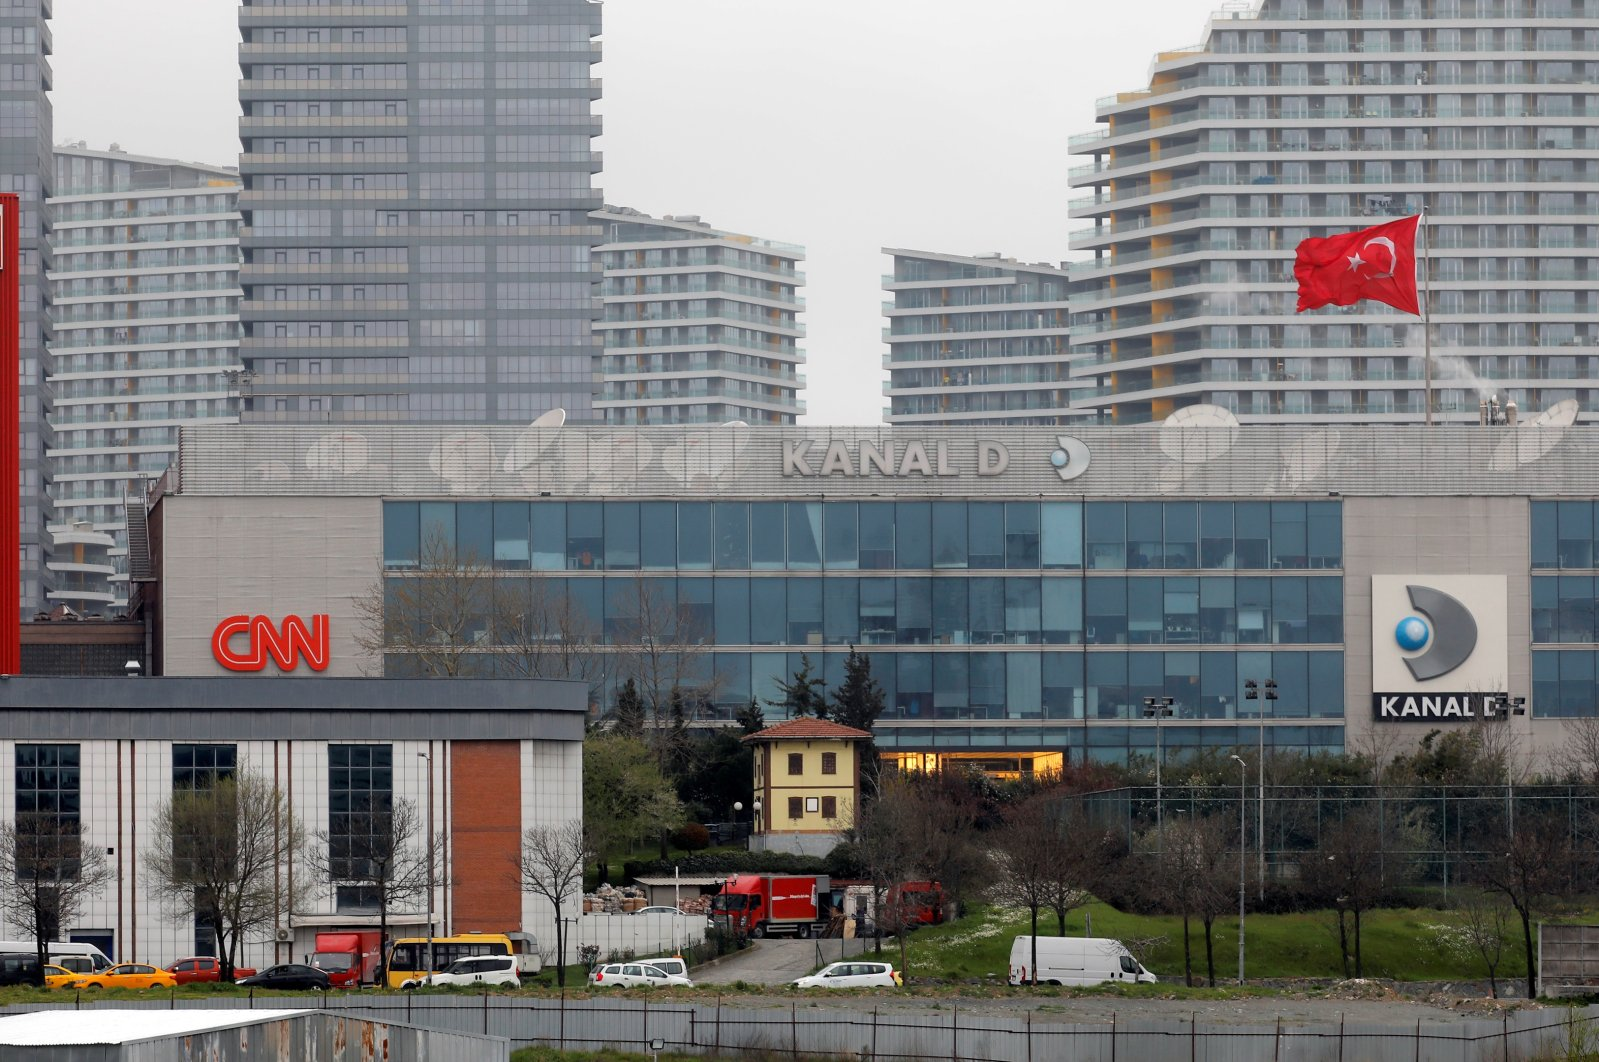 A media center that comprises Hürriyet newspaper and broadcasters CNN Türk and Kanal D is pictured in Istanbul, Turkey, March 22, 2018. (Reuters Photo)